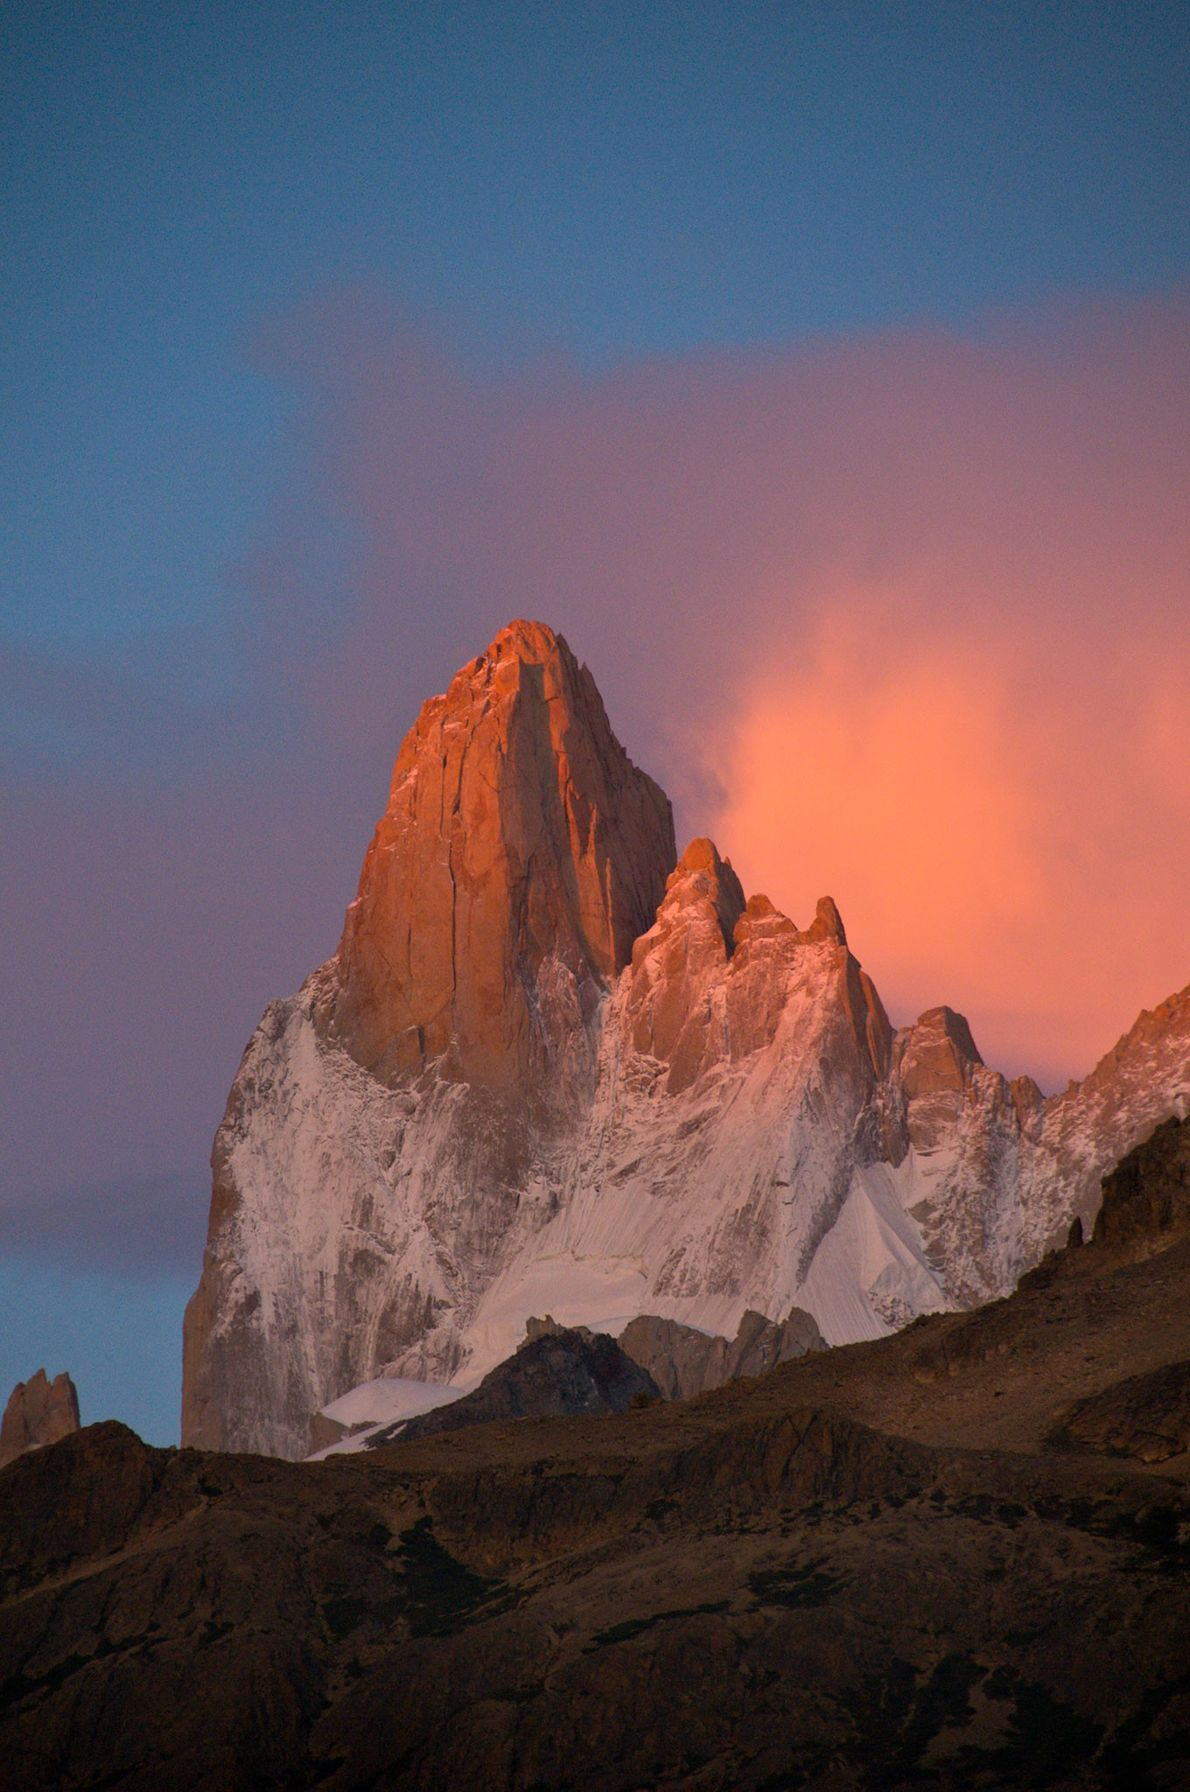 Mount Fitz Roy, Argentina and Chile